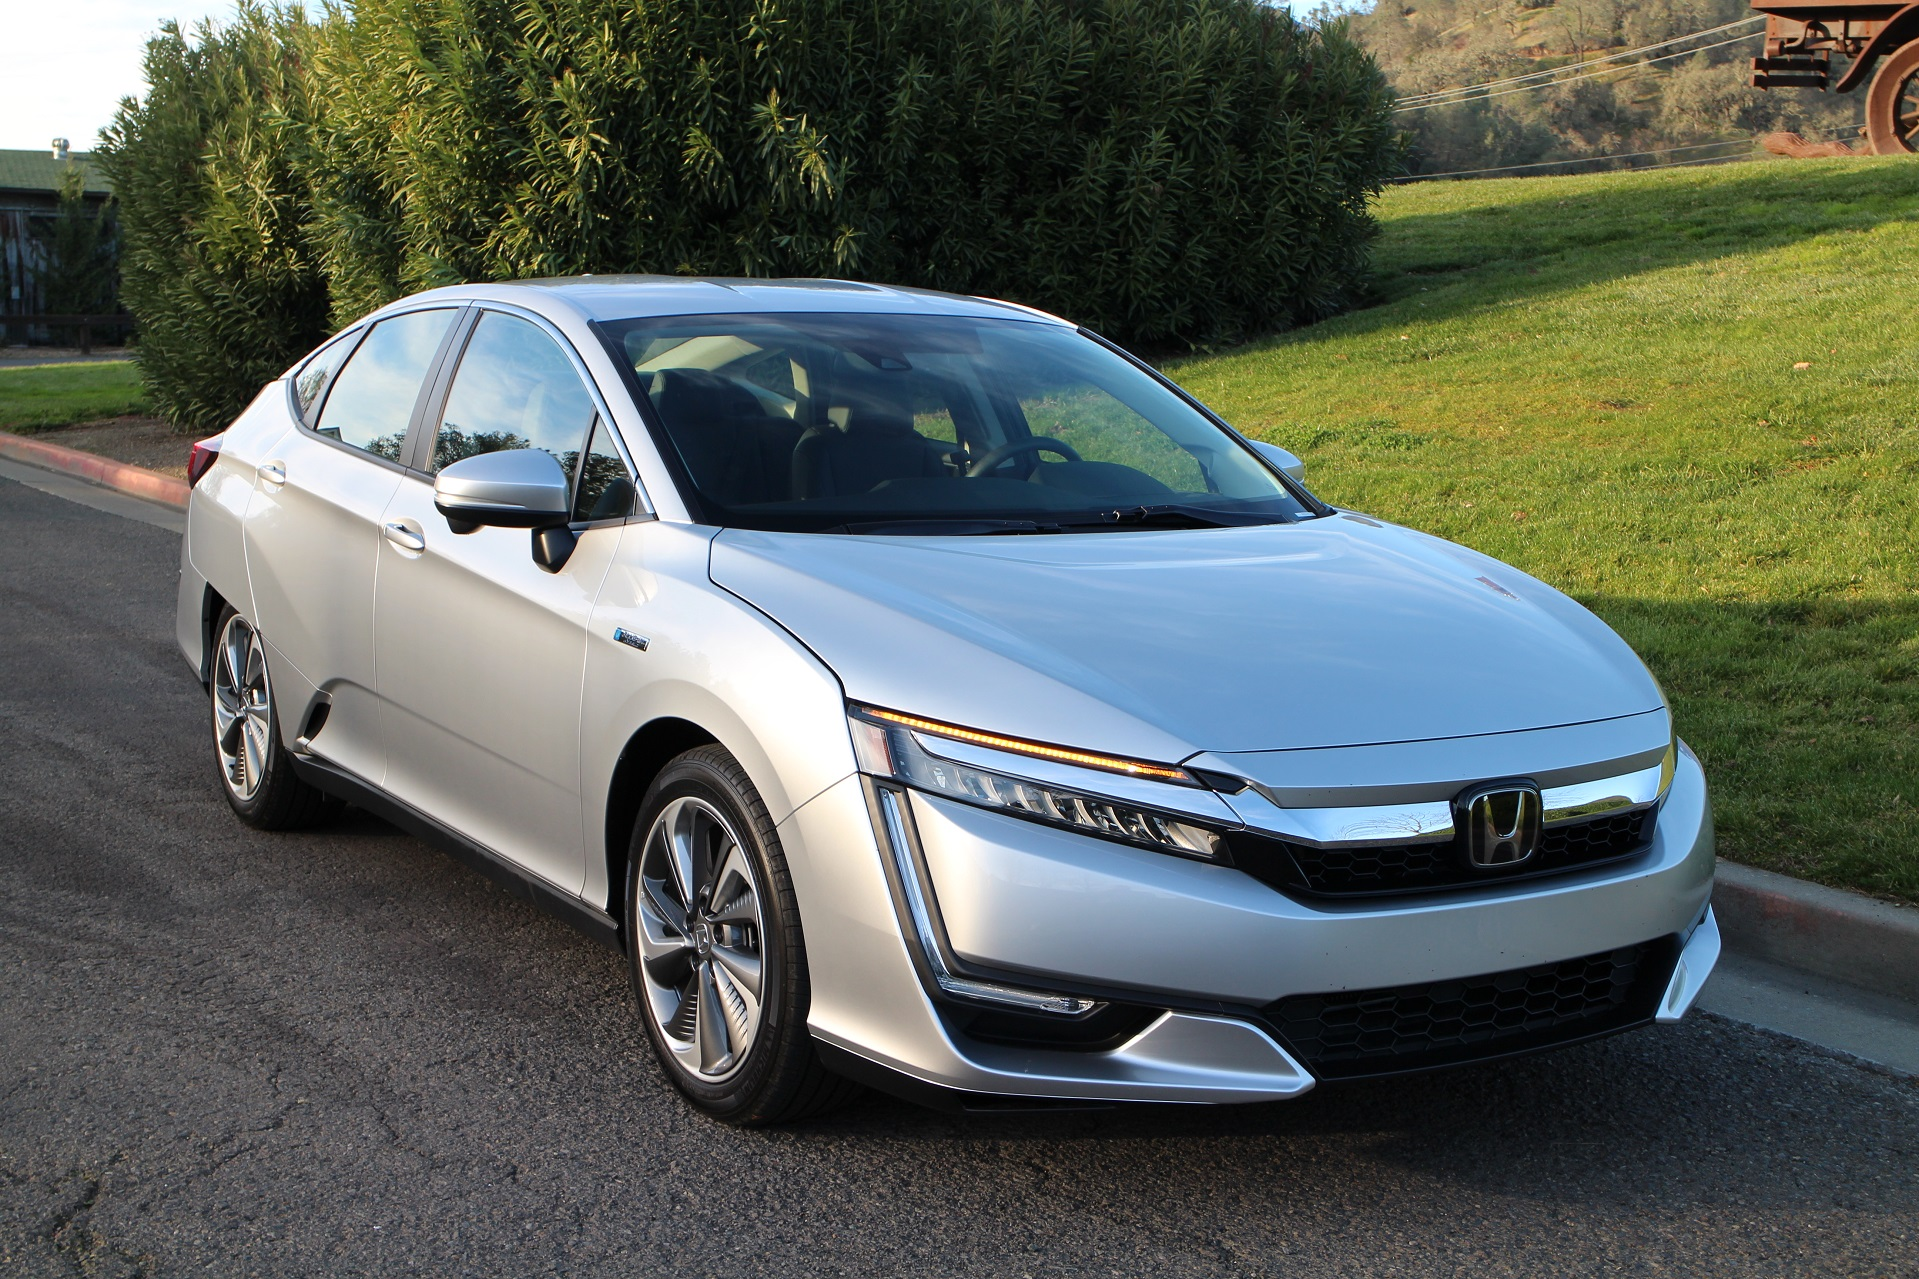 2018 Honda Clarity Review, Ratings, Specs, Prices, and Photos - The ...